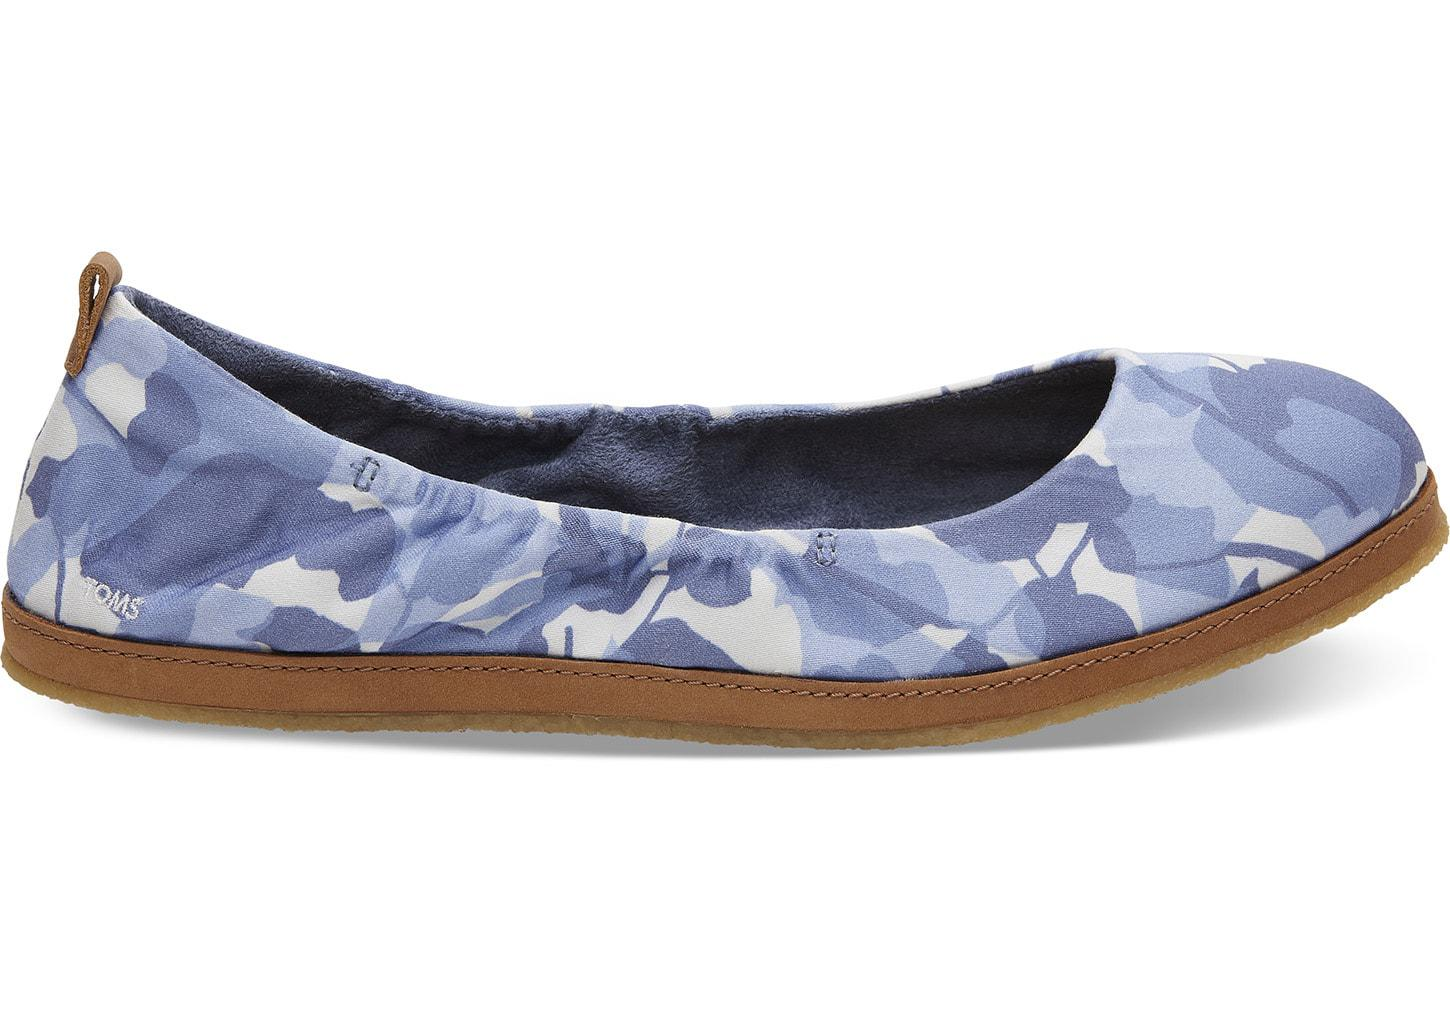 74ced872cb1 Toms Infinity Blue Leaf Sateen Women s Olivia Flats in Blue - Lyst